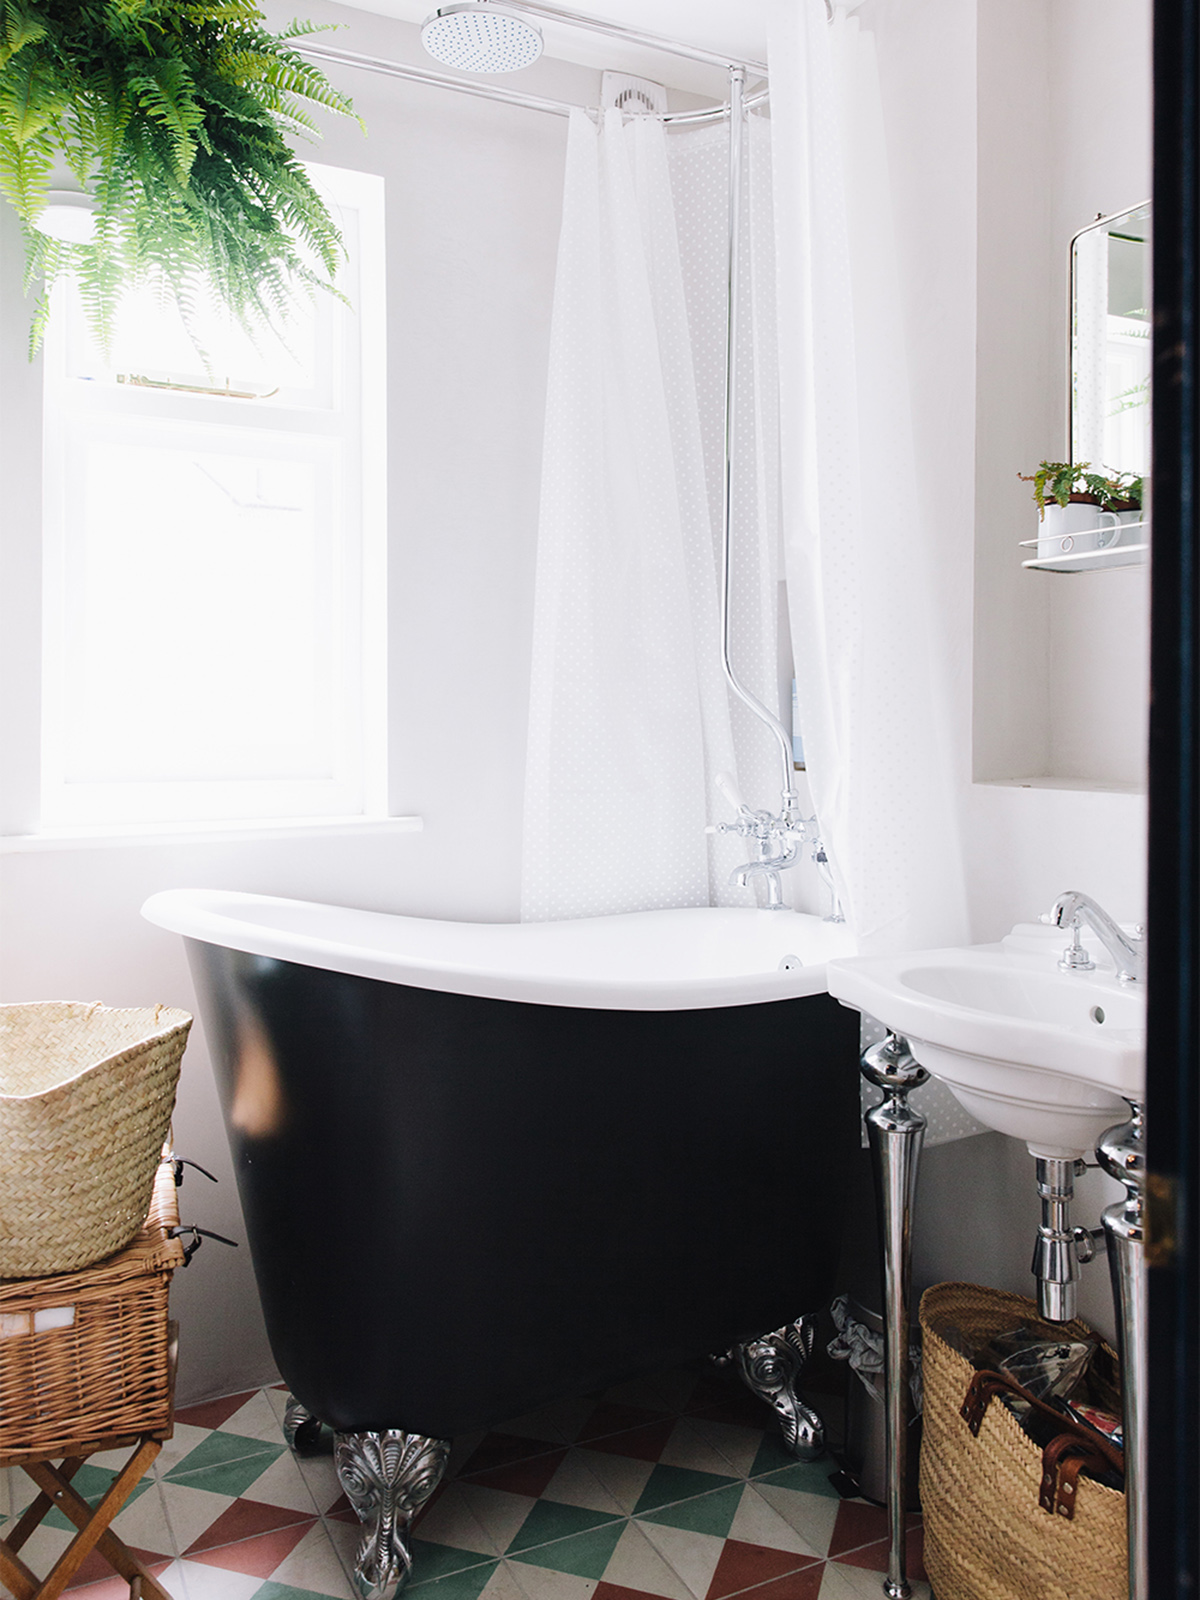 this tiny slipper bath offers luxury in such a small space